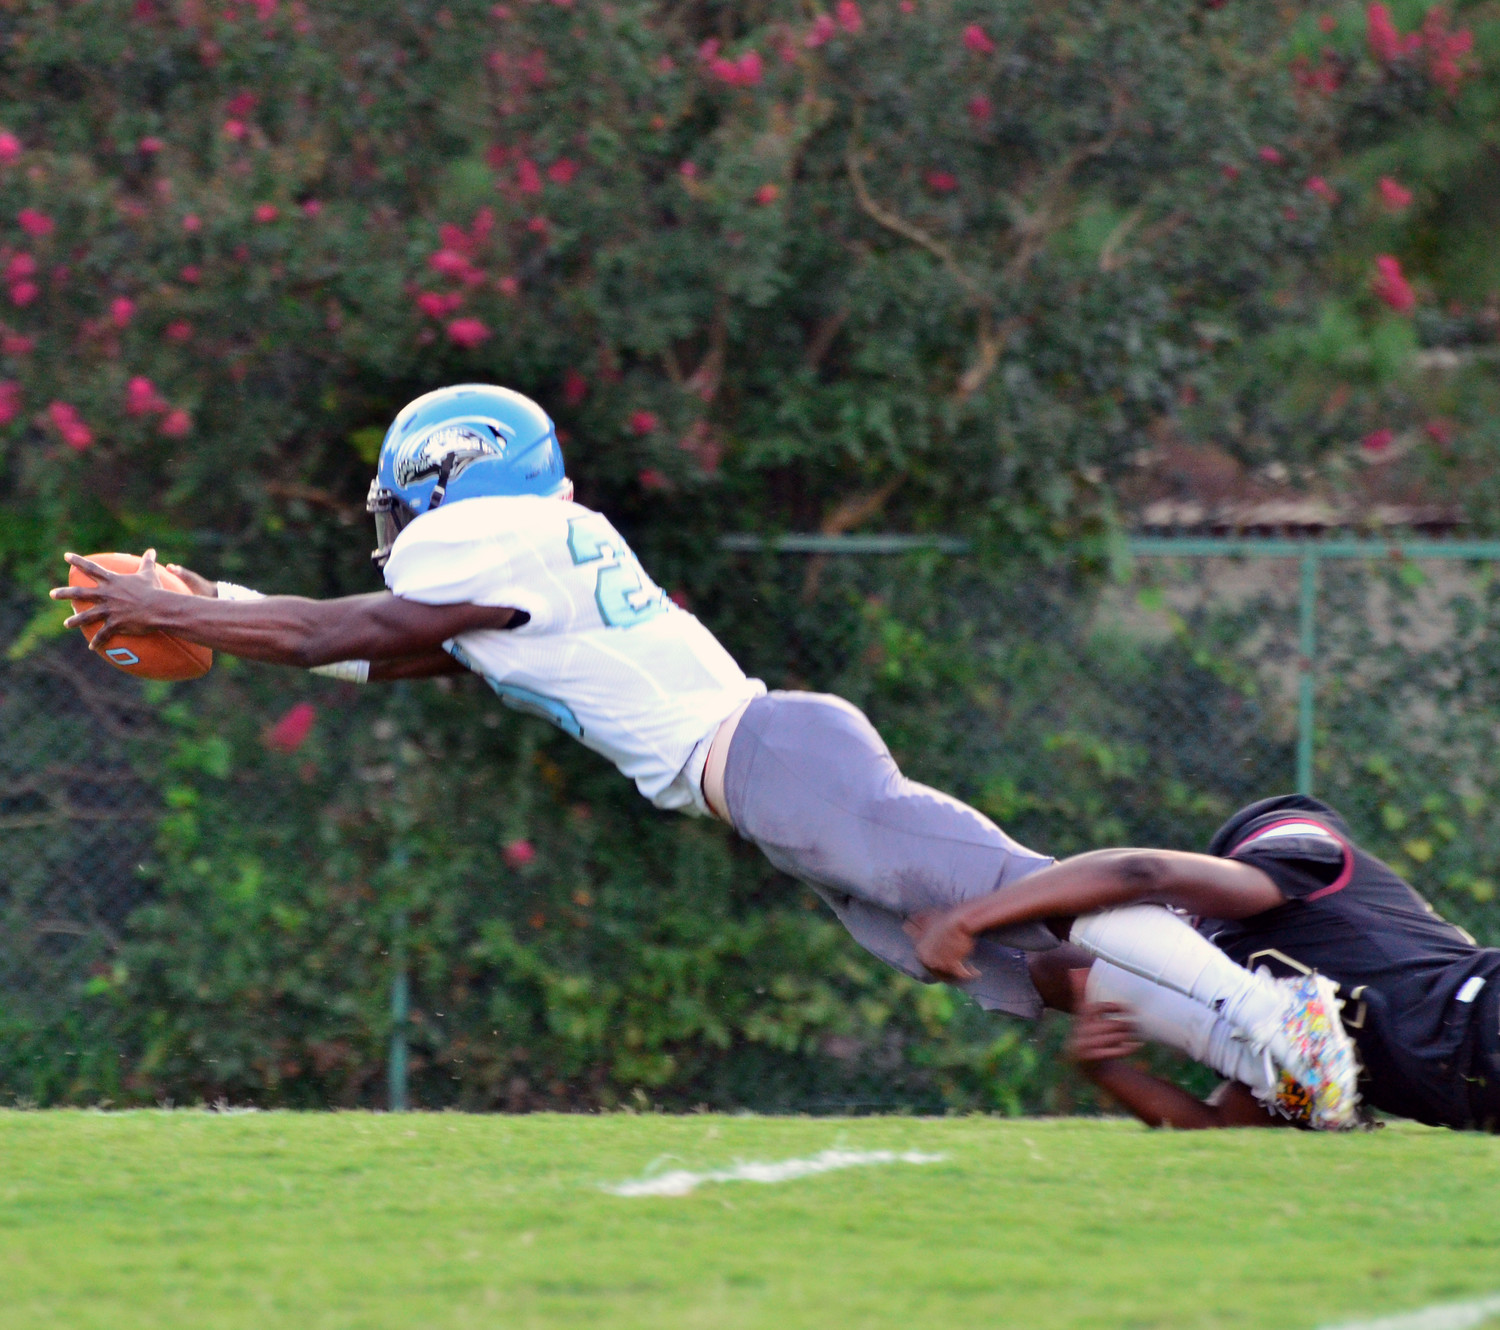 Overhills' DeShaun Lewis stretches out to score the first of his three rushing touchdowns at Harnett Central Friday night. The Jaguars would go on to score four more rushing touchdowns and two passing touchdowns as a team, hammering Harnett Central, 50-13.